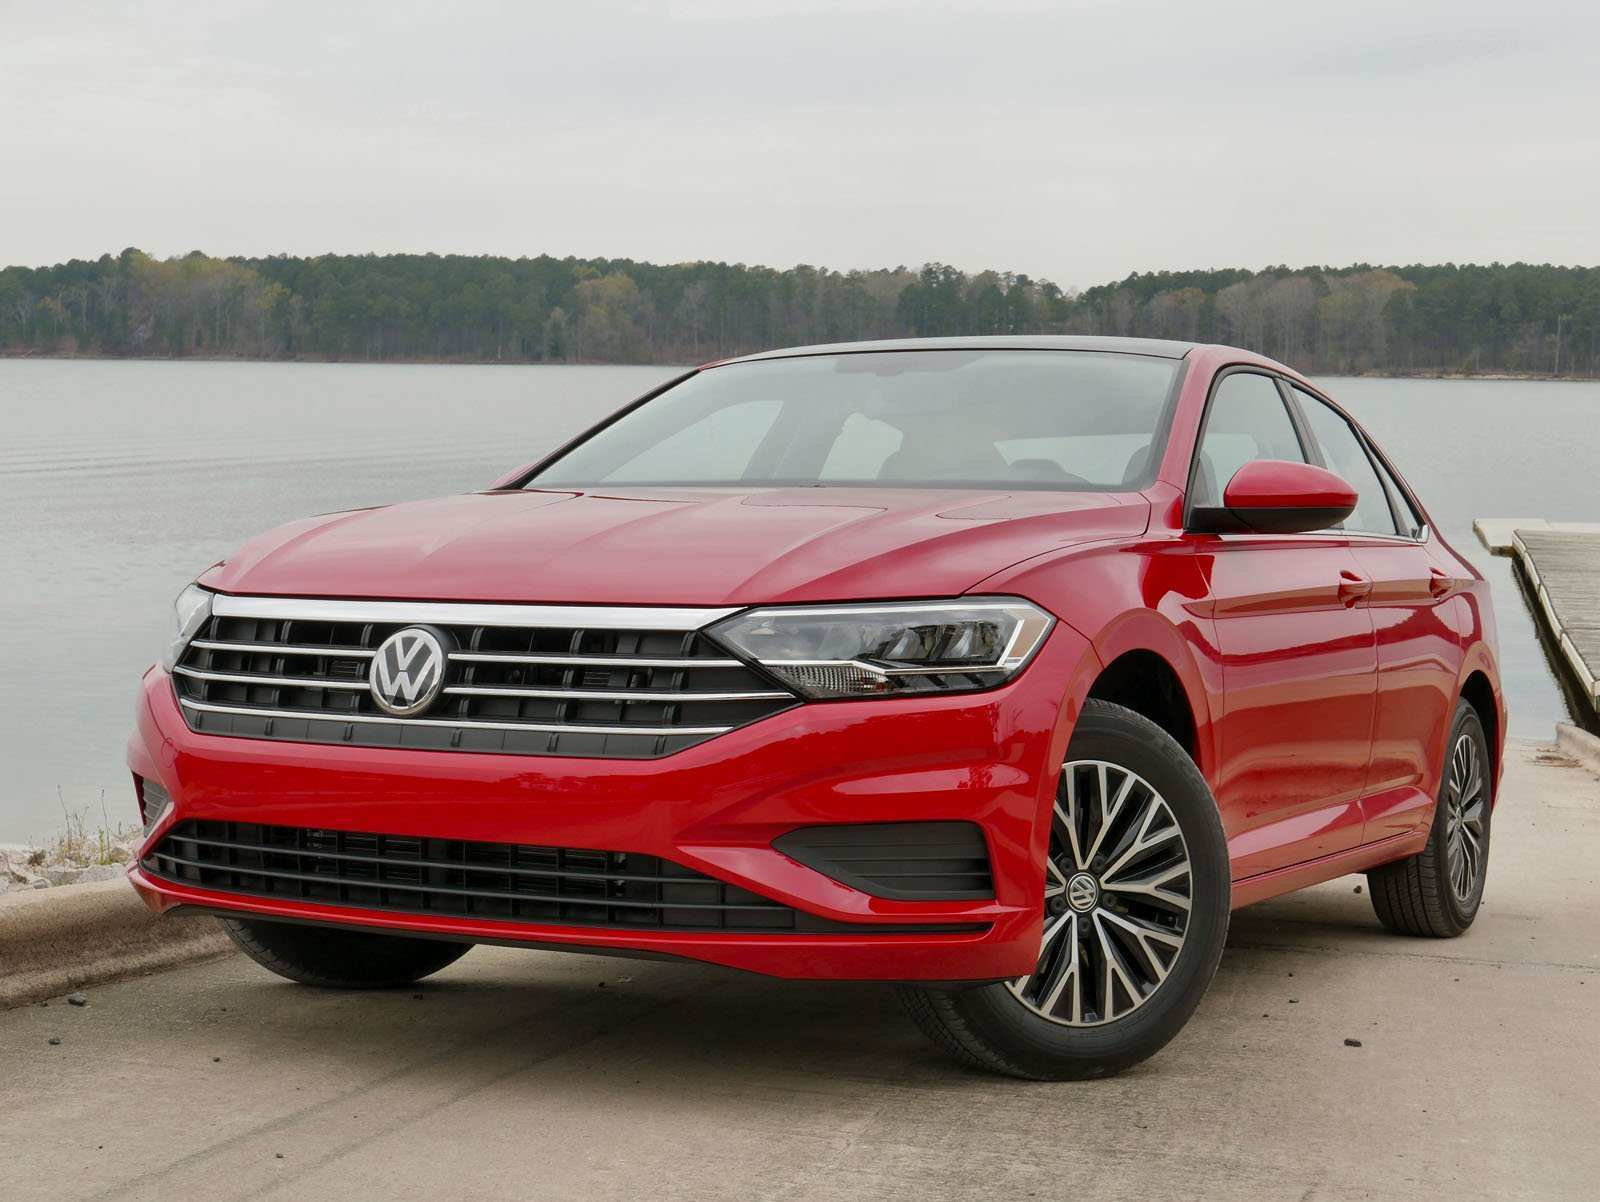 63 The Best Volkswagen Jetta 2019 Horsepower First Drive